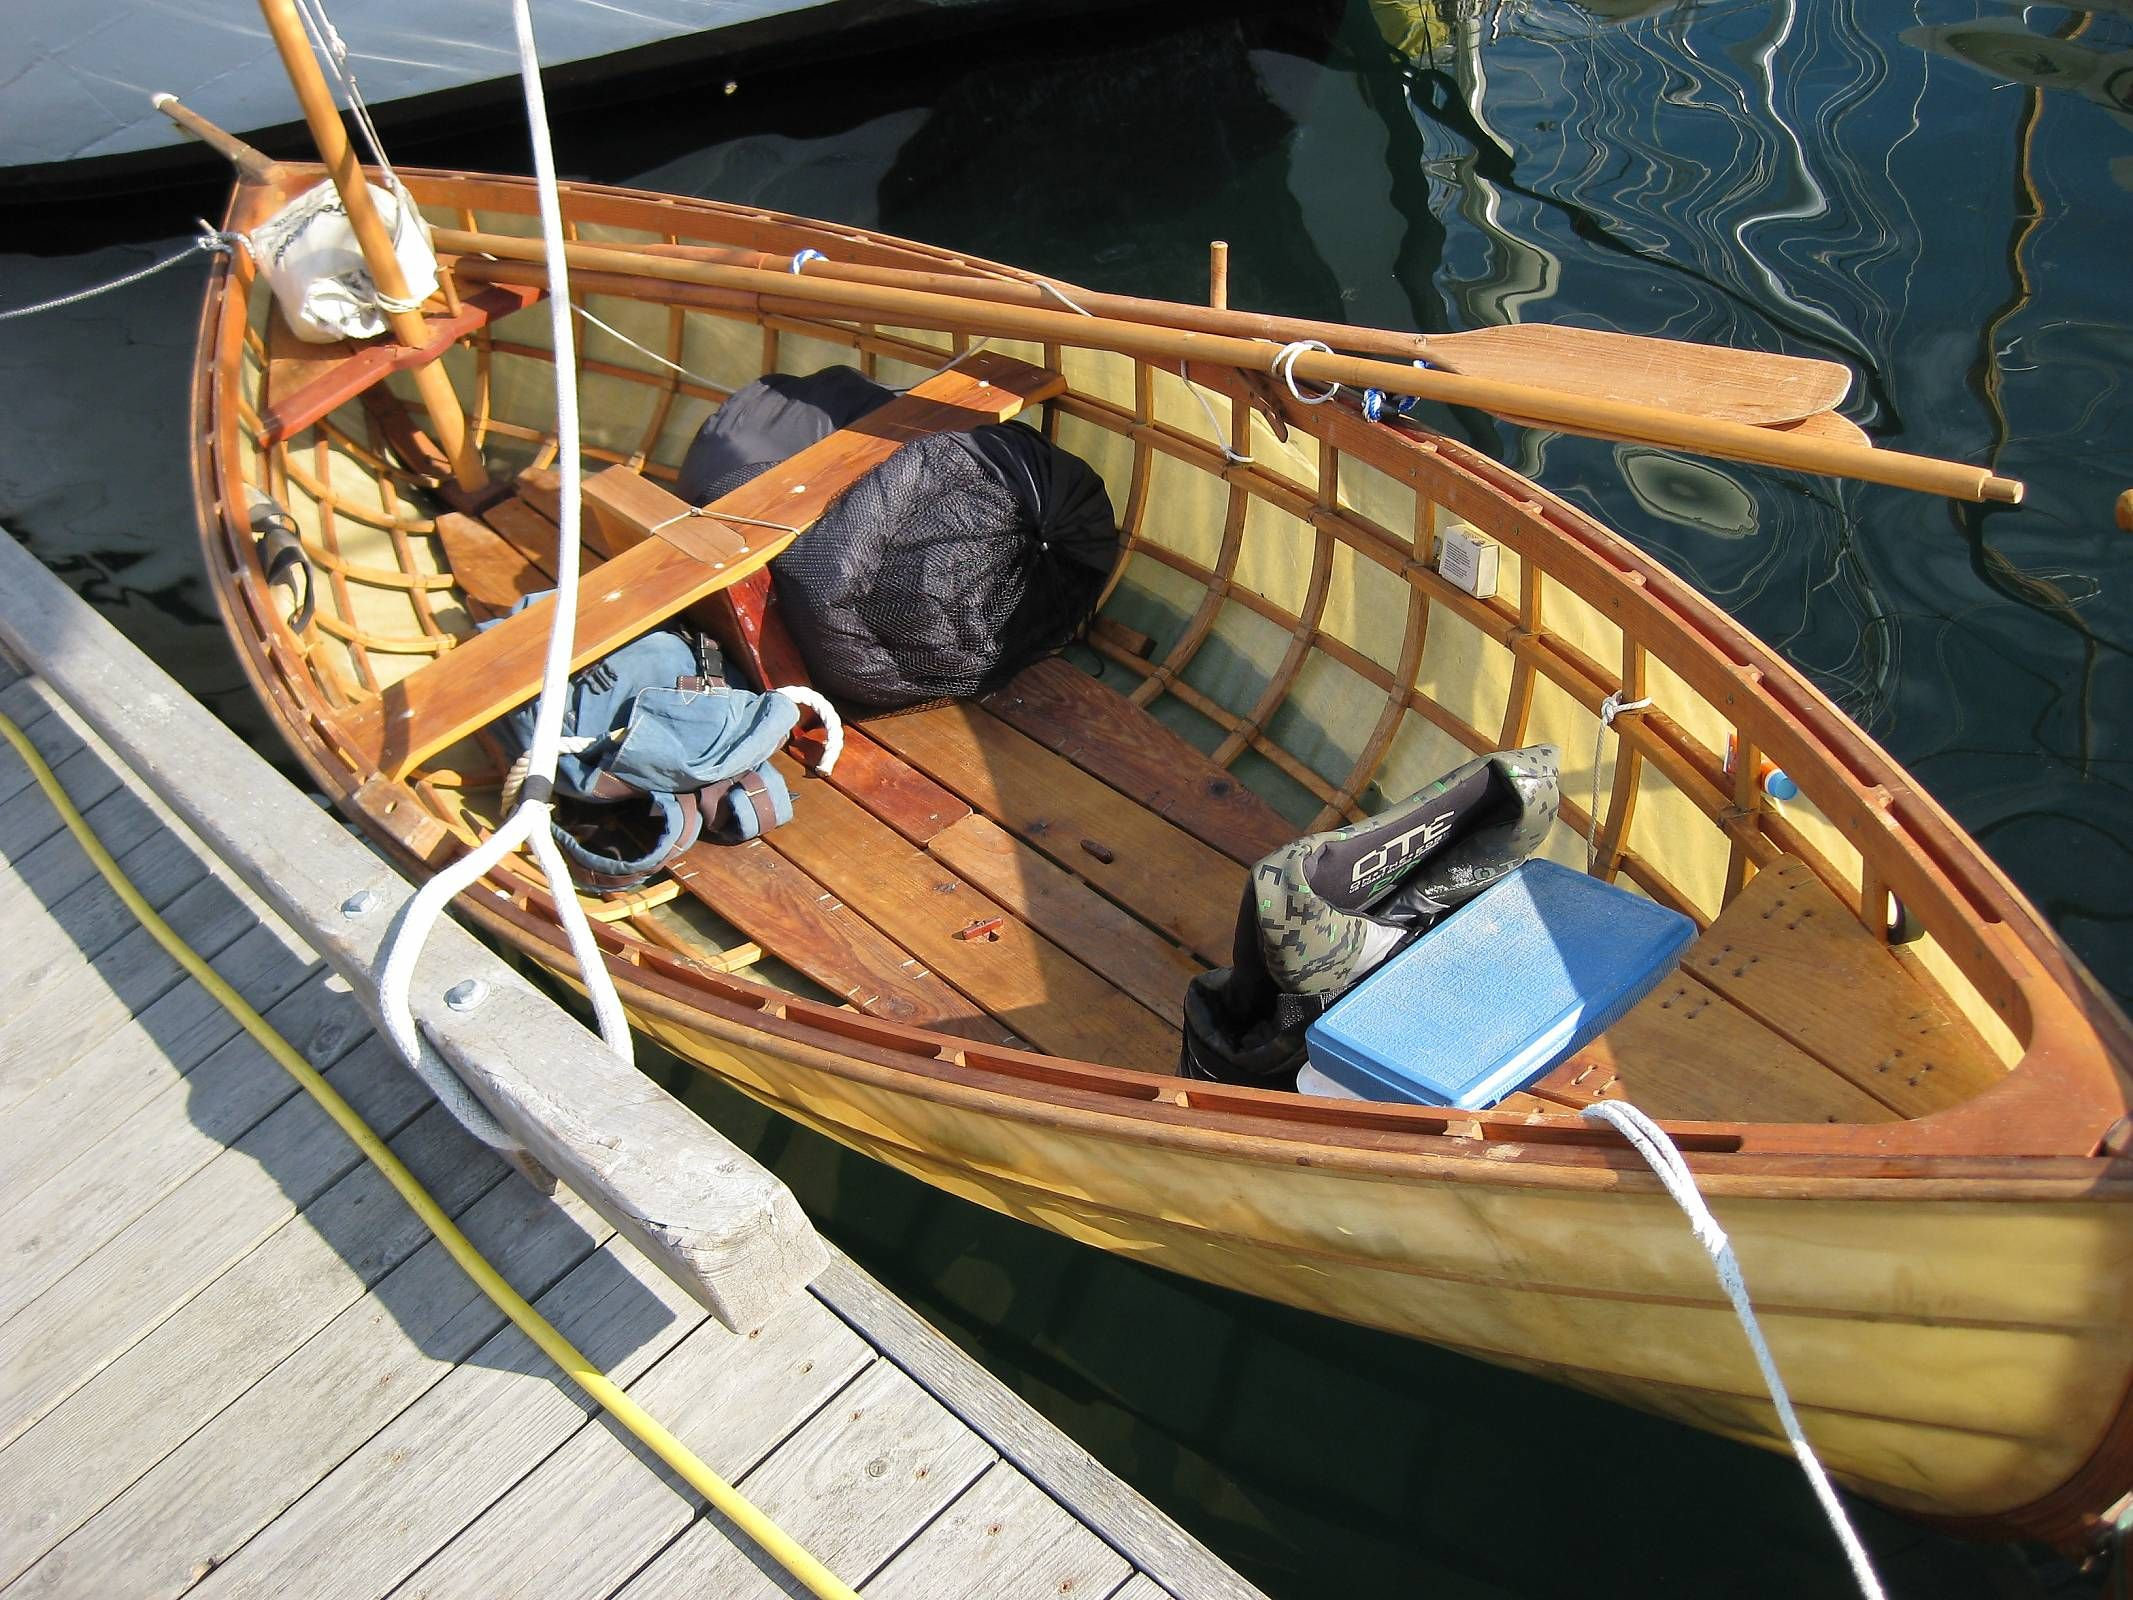 Home built jet dinghy s from new zealand boat design forums - Wooden Boat Building